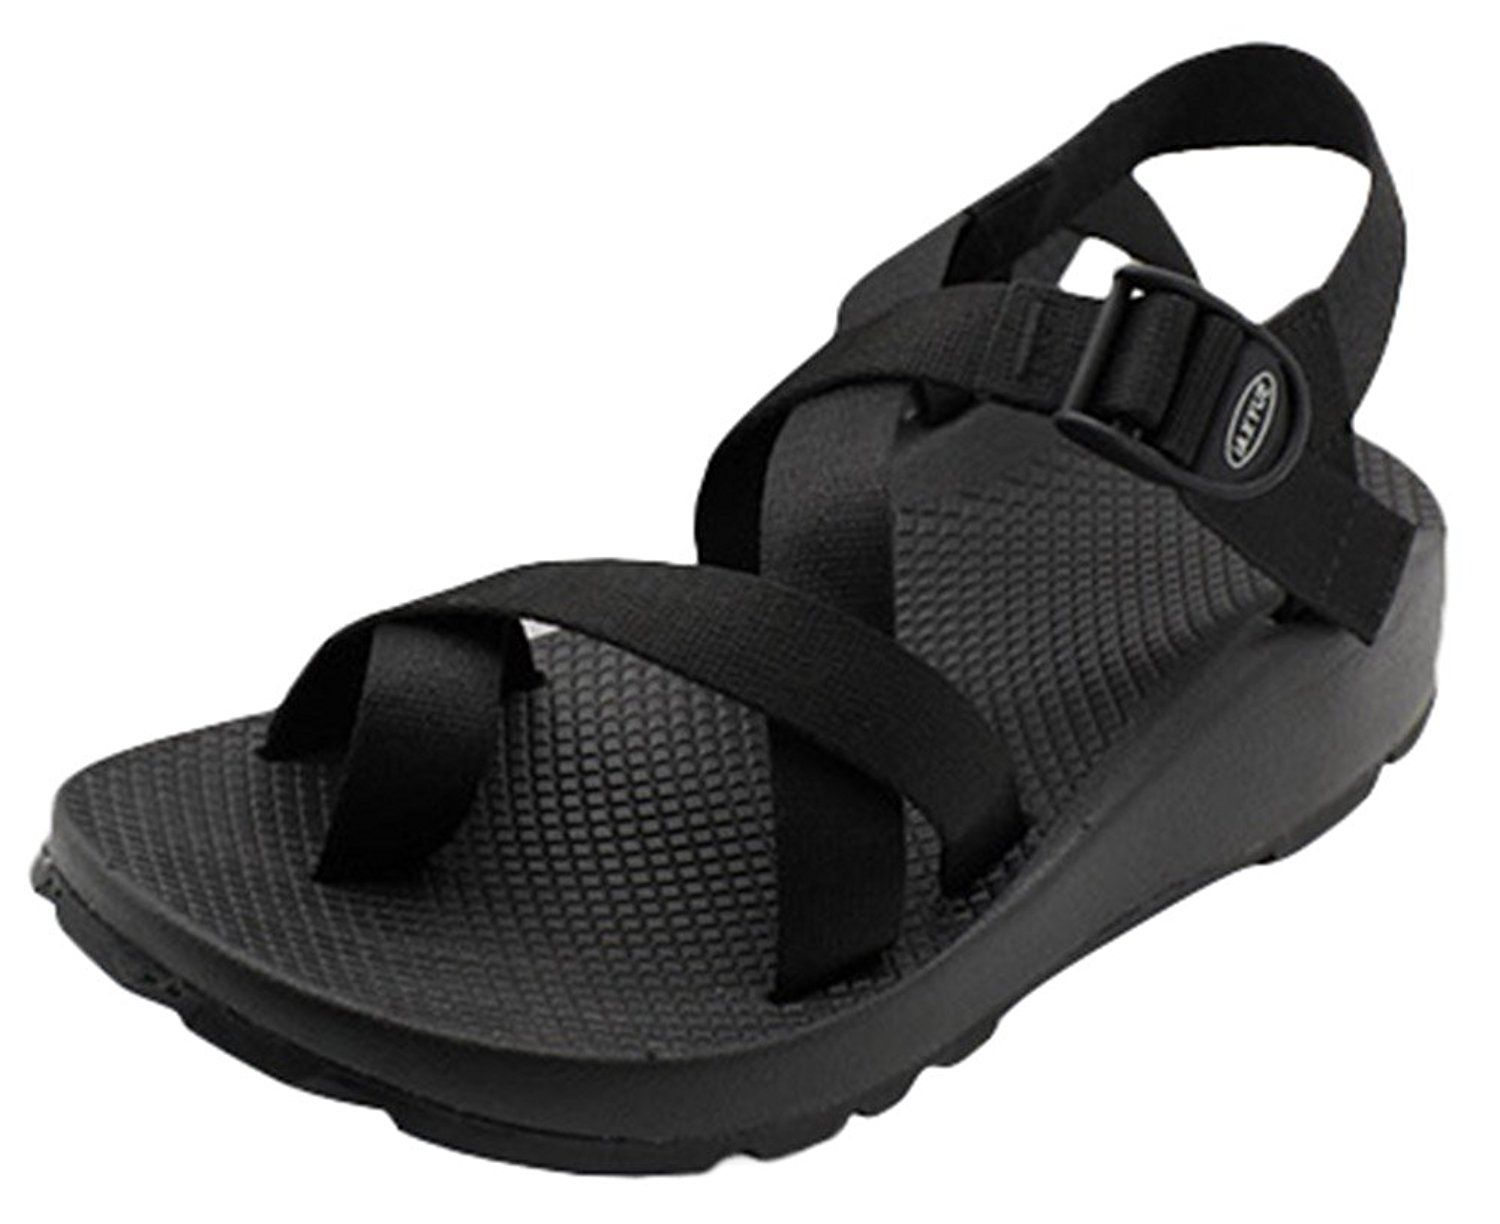 Women's Flat Sporty Beach Sandal Water Shoes Casual Athletic Sandals Plus Size